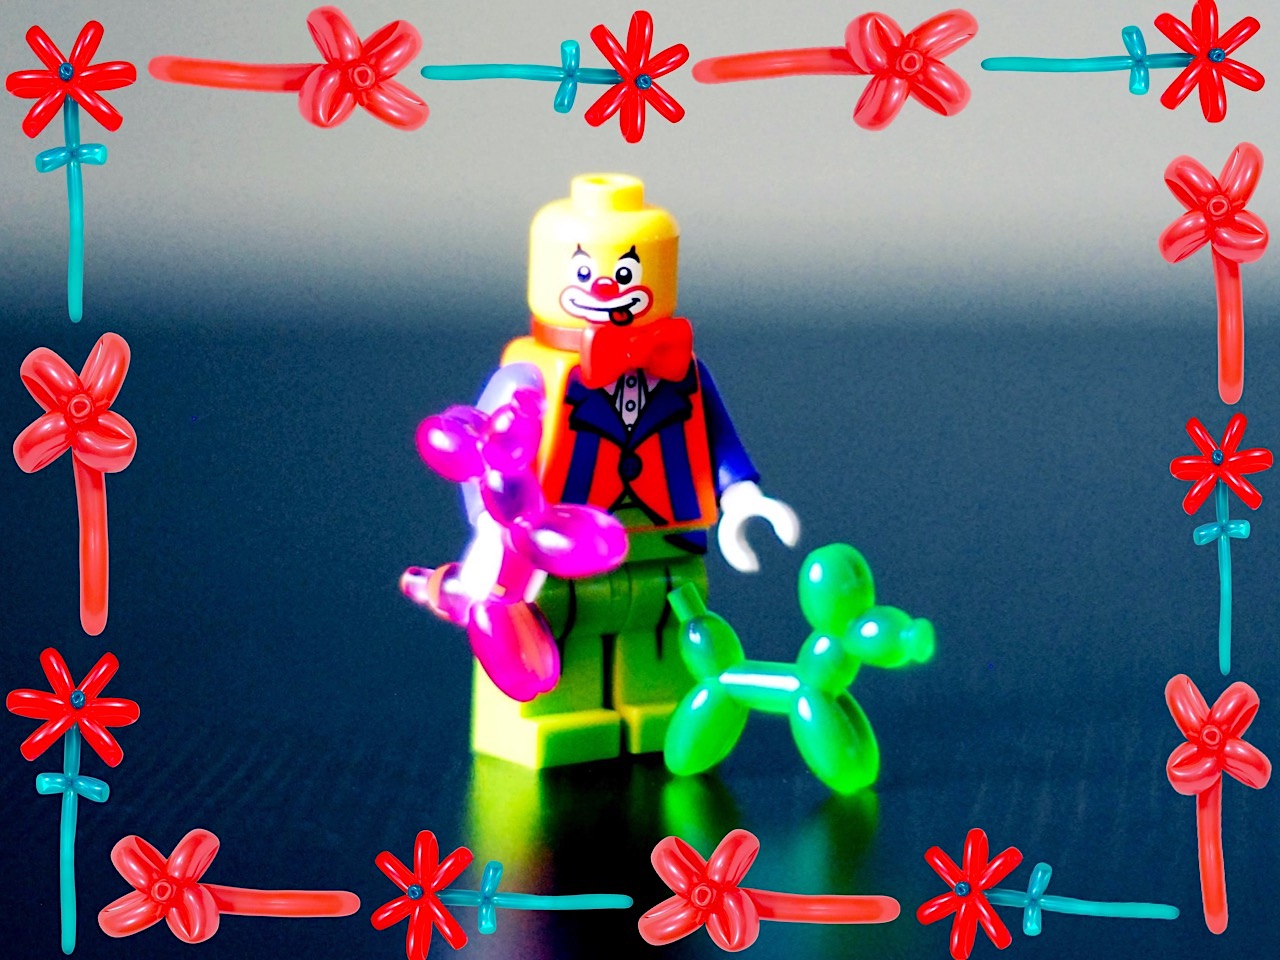 Lego man holding two balloon dogs surrounded by a frame of balloon flowers